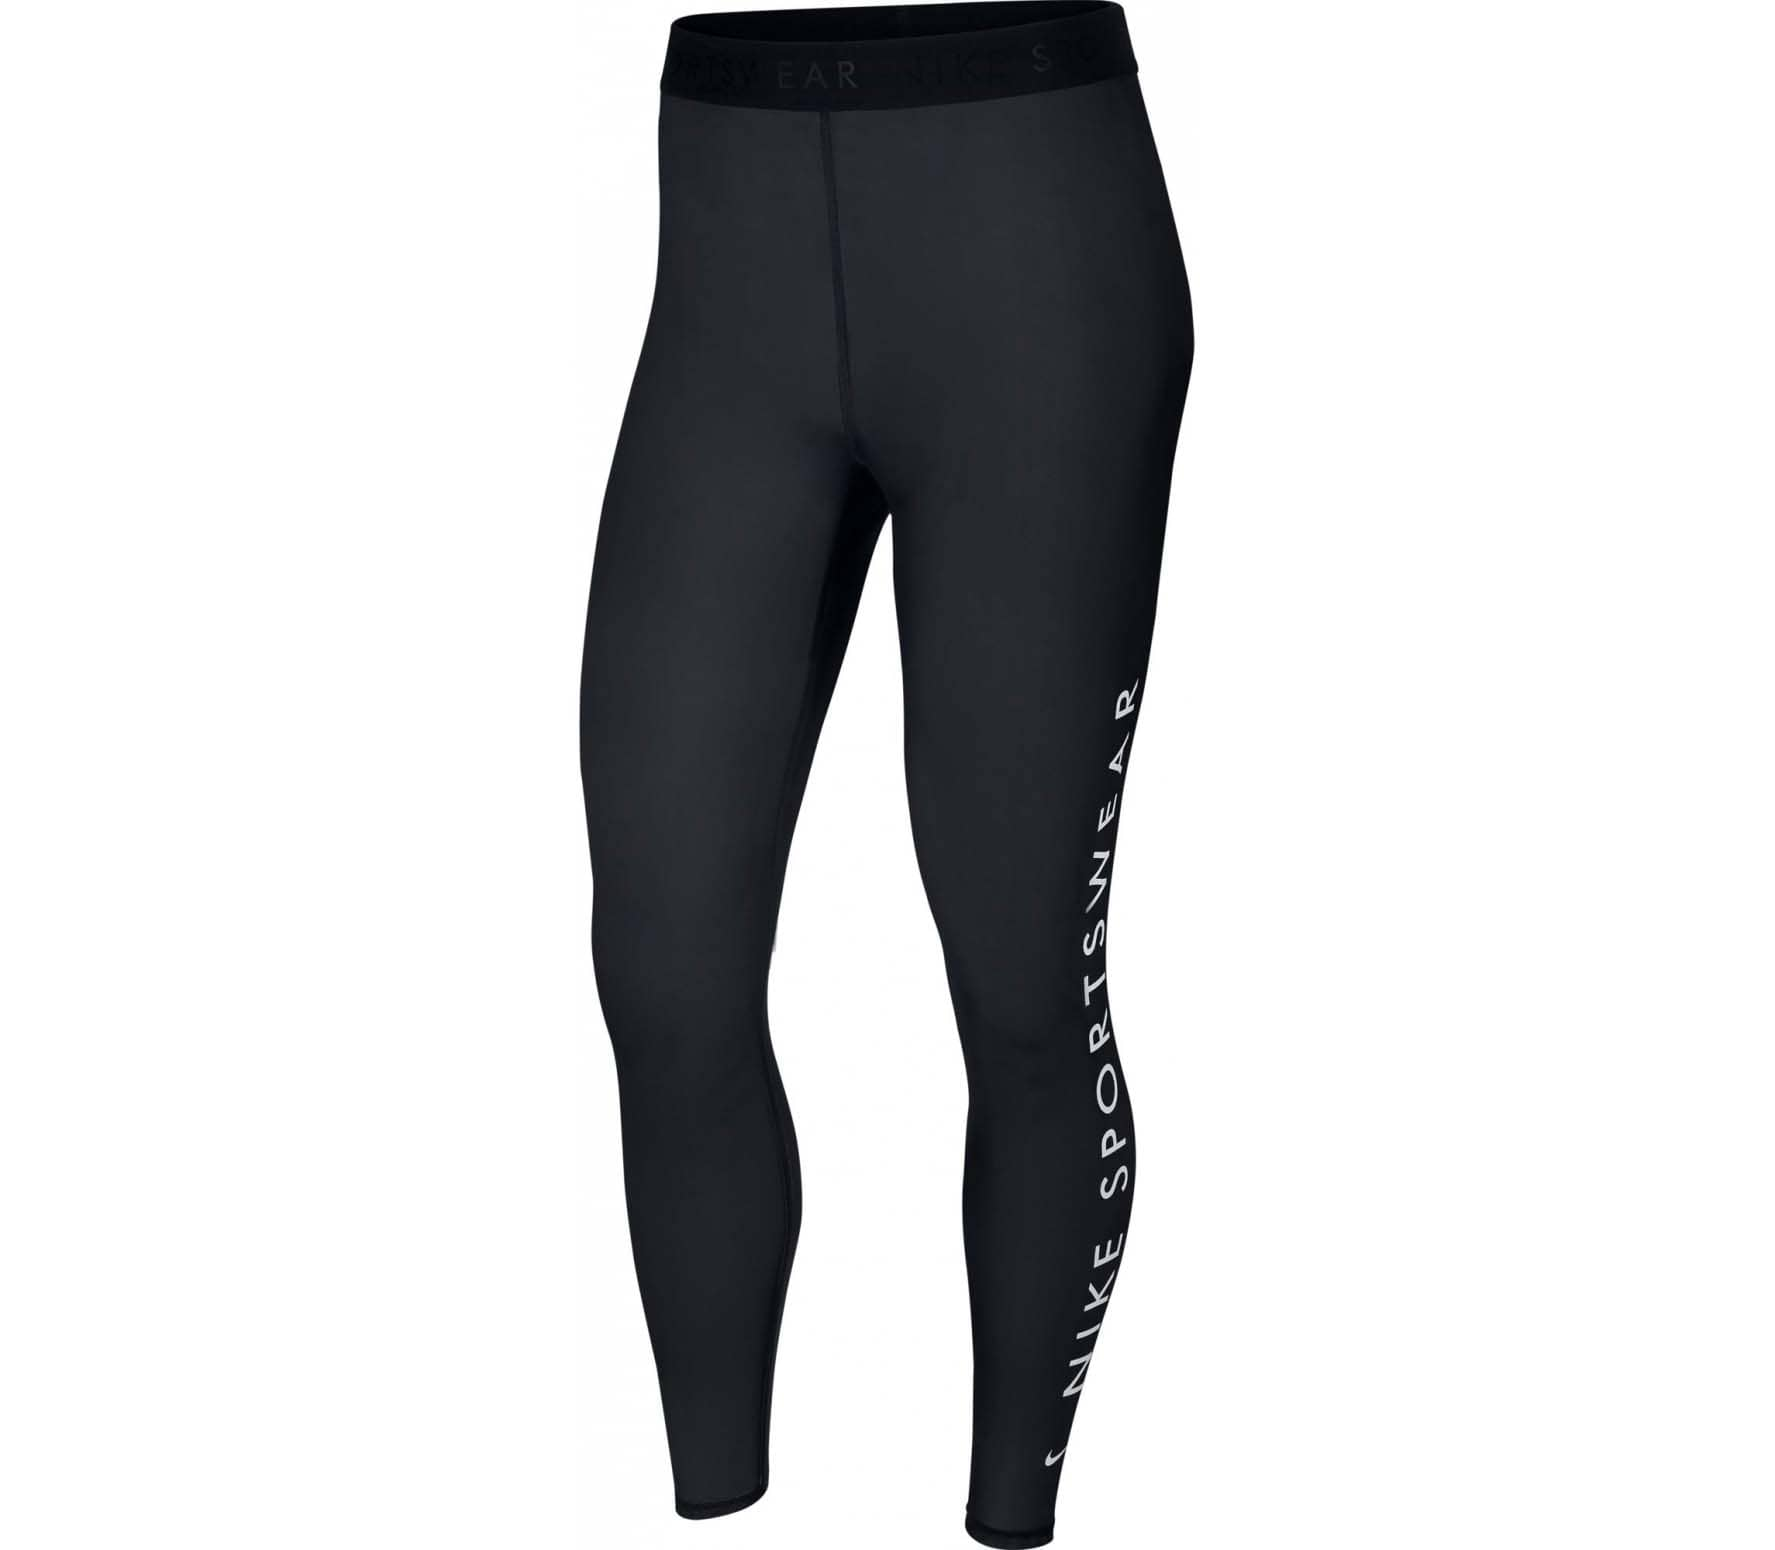 NSW 78 Women Tights